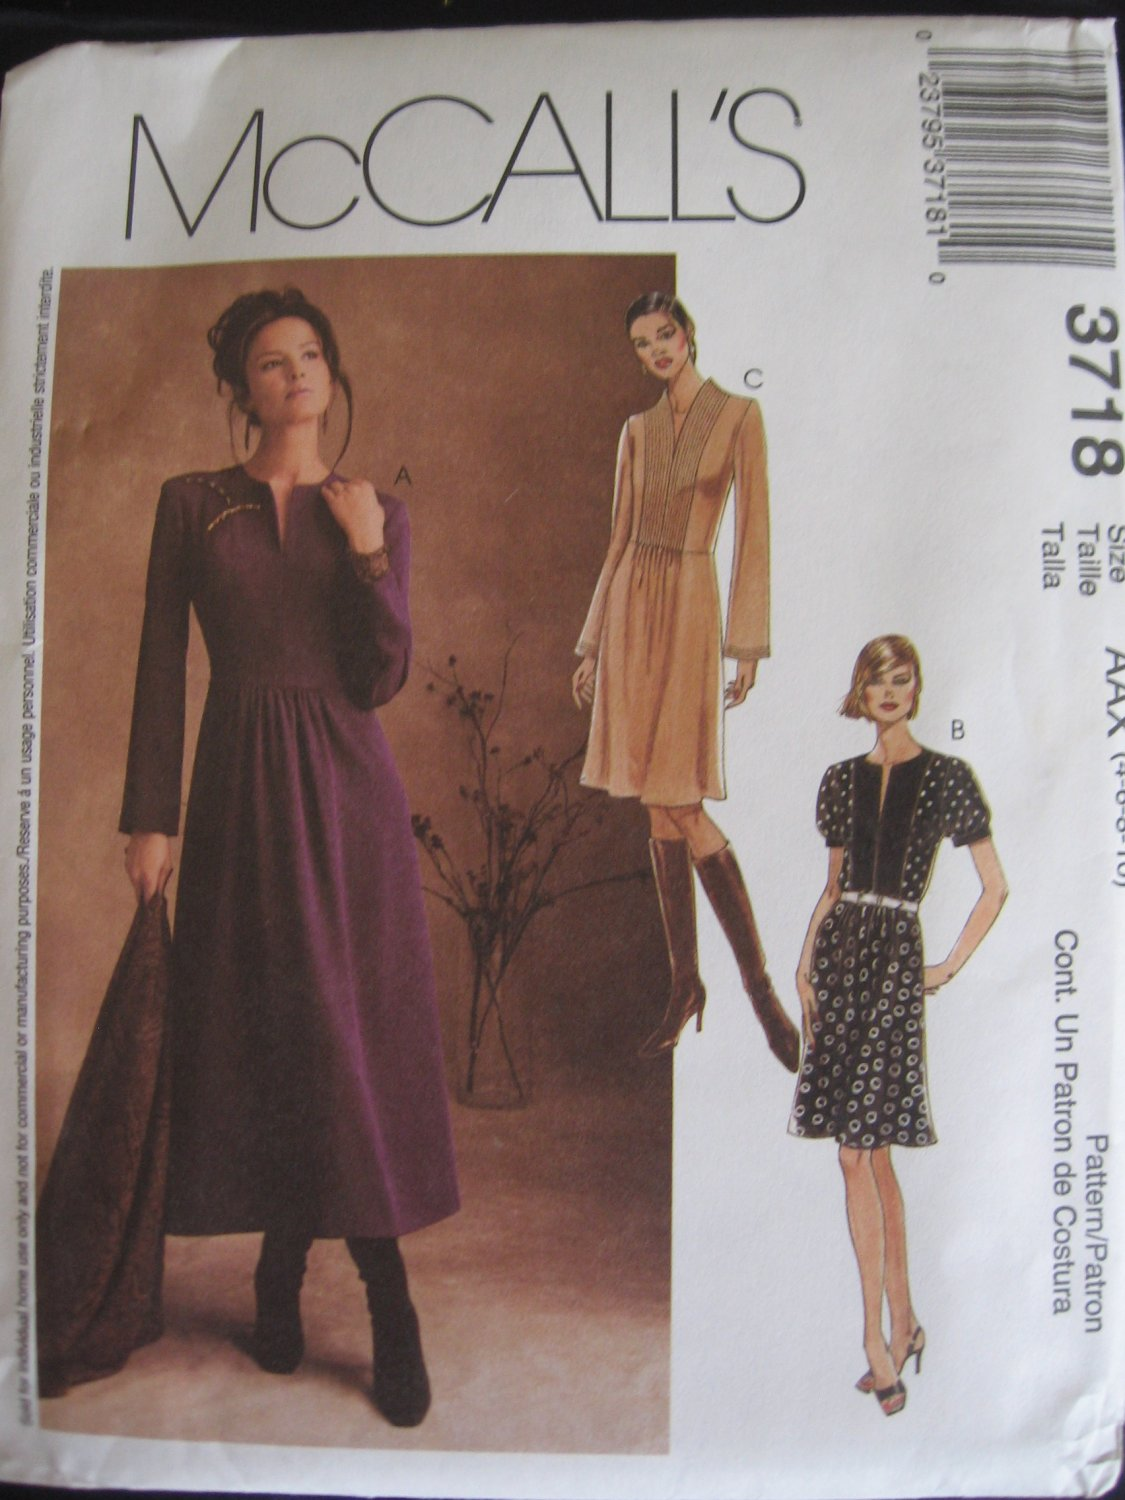 McCall's Dress in 2 Lengths Sewing Pattern  3718 uncut size 4,6,8, 10